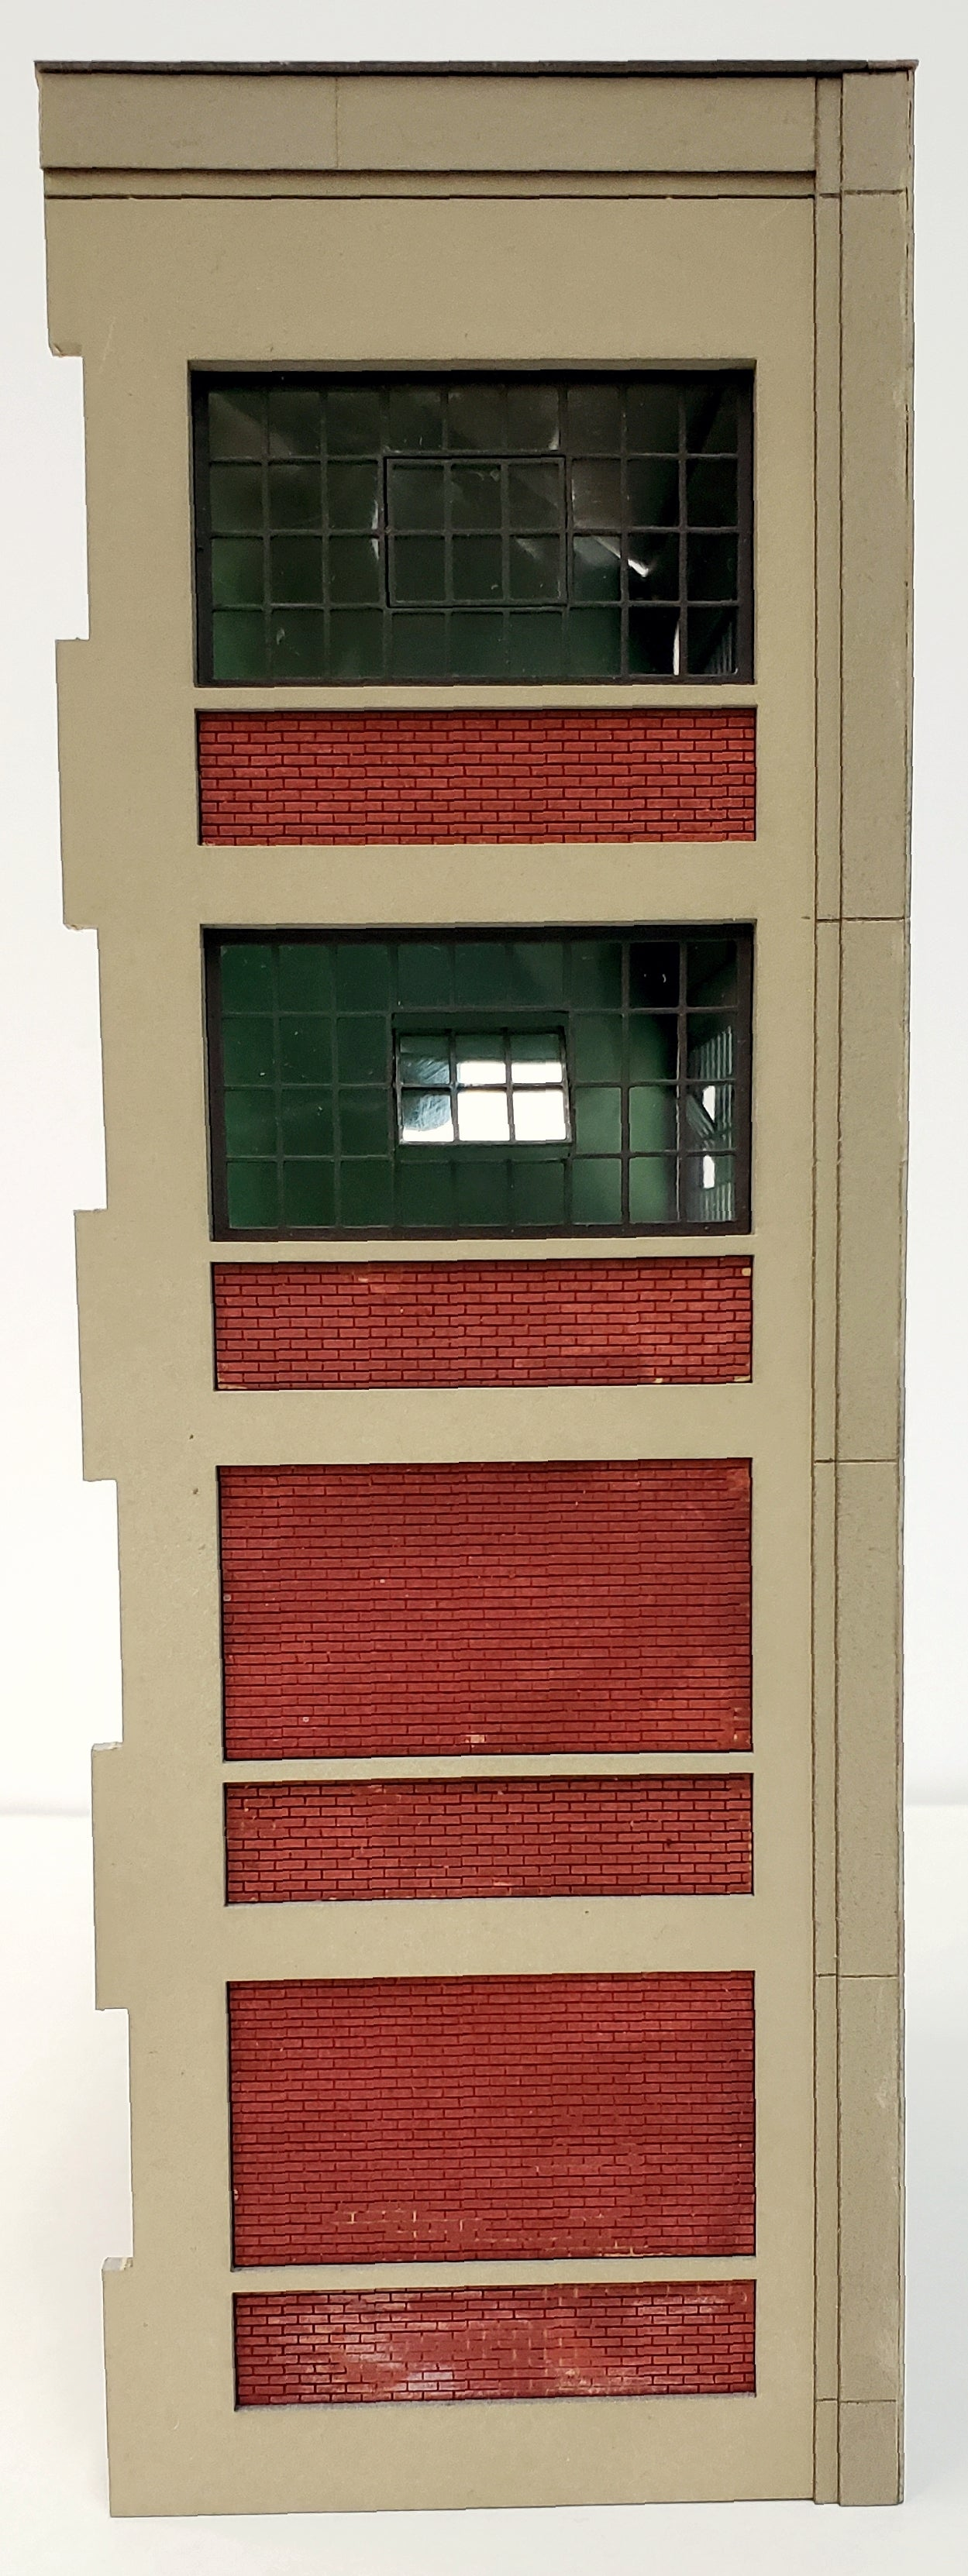 HO4052 Industrial Wall Module - 2 Windows / 2 Brick Panels - ITLA